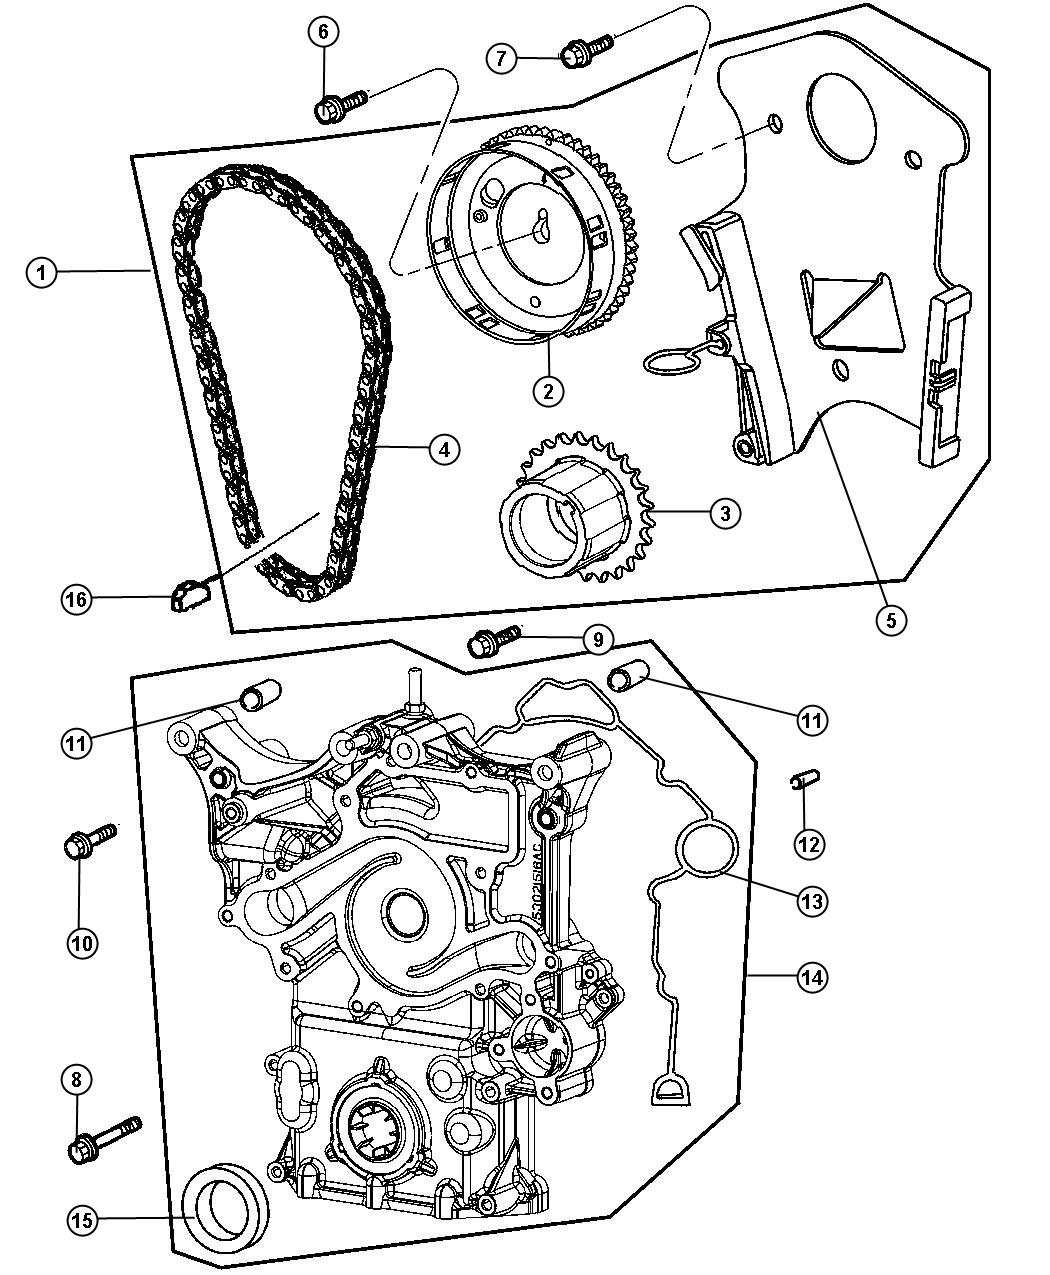 Service manual [2007 Chrysler Aspen Timing Chain